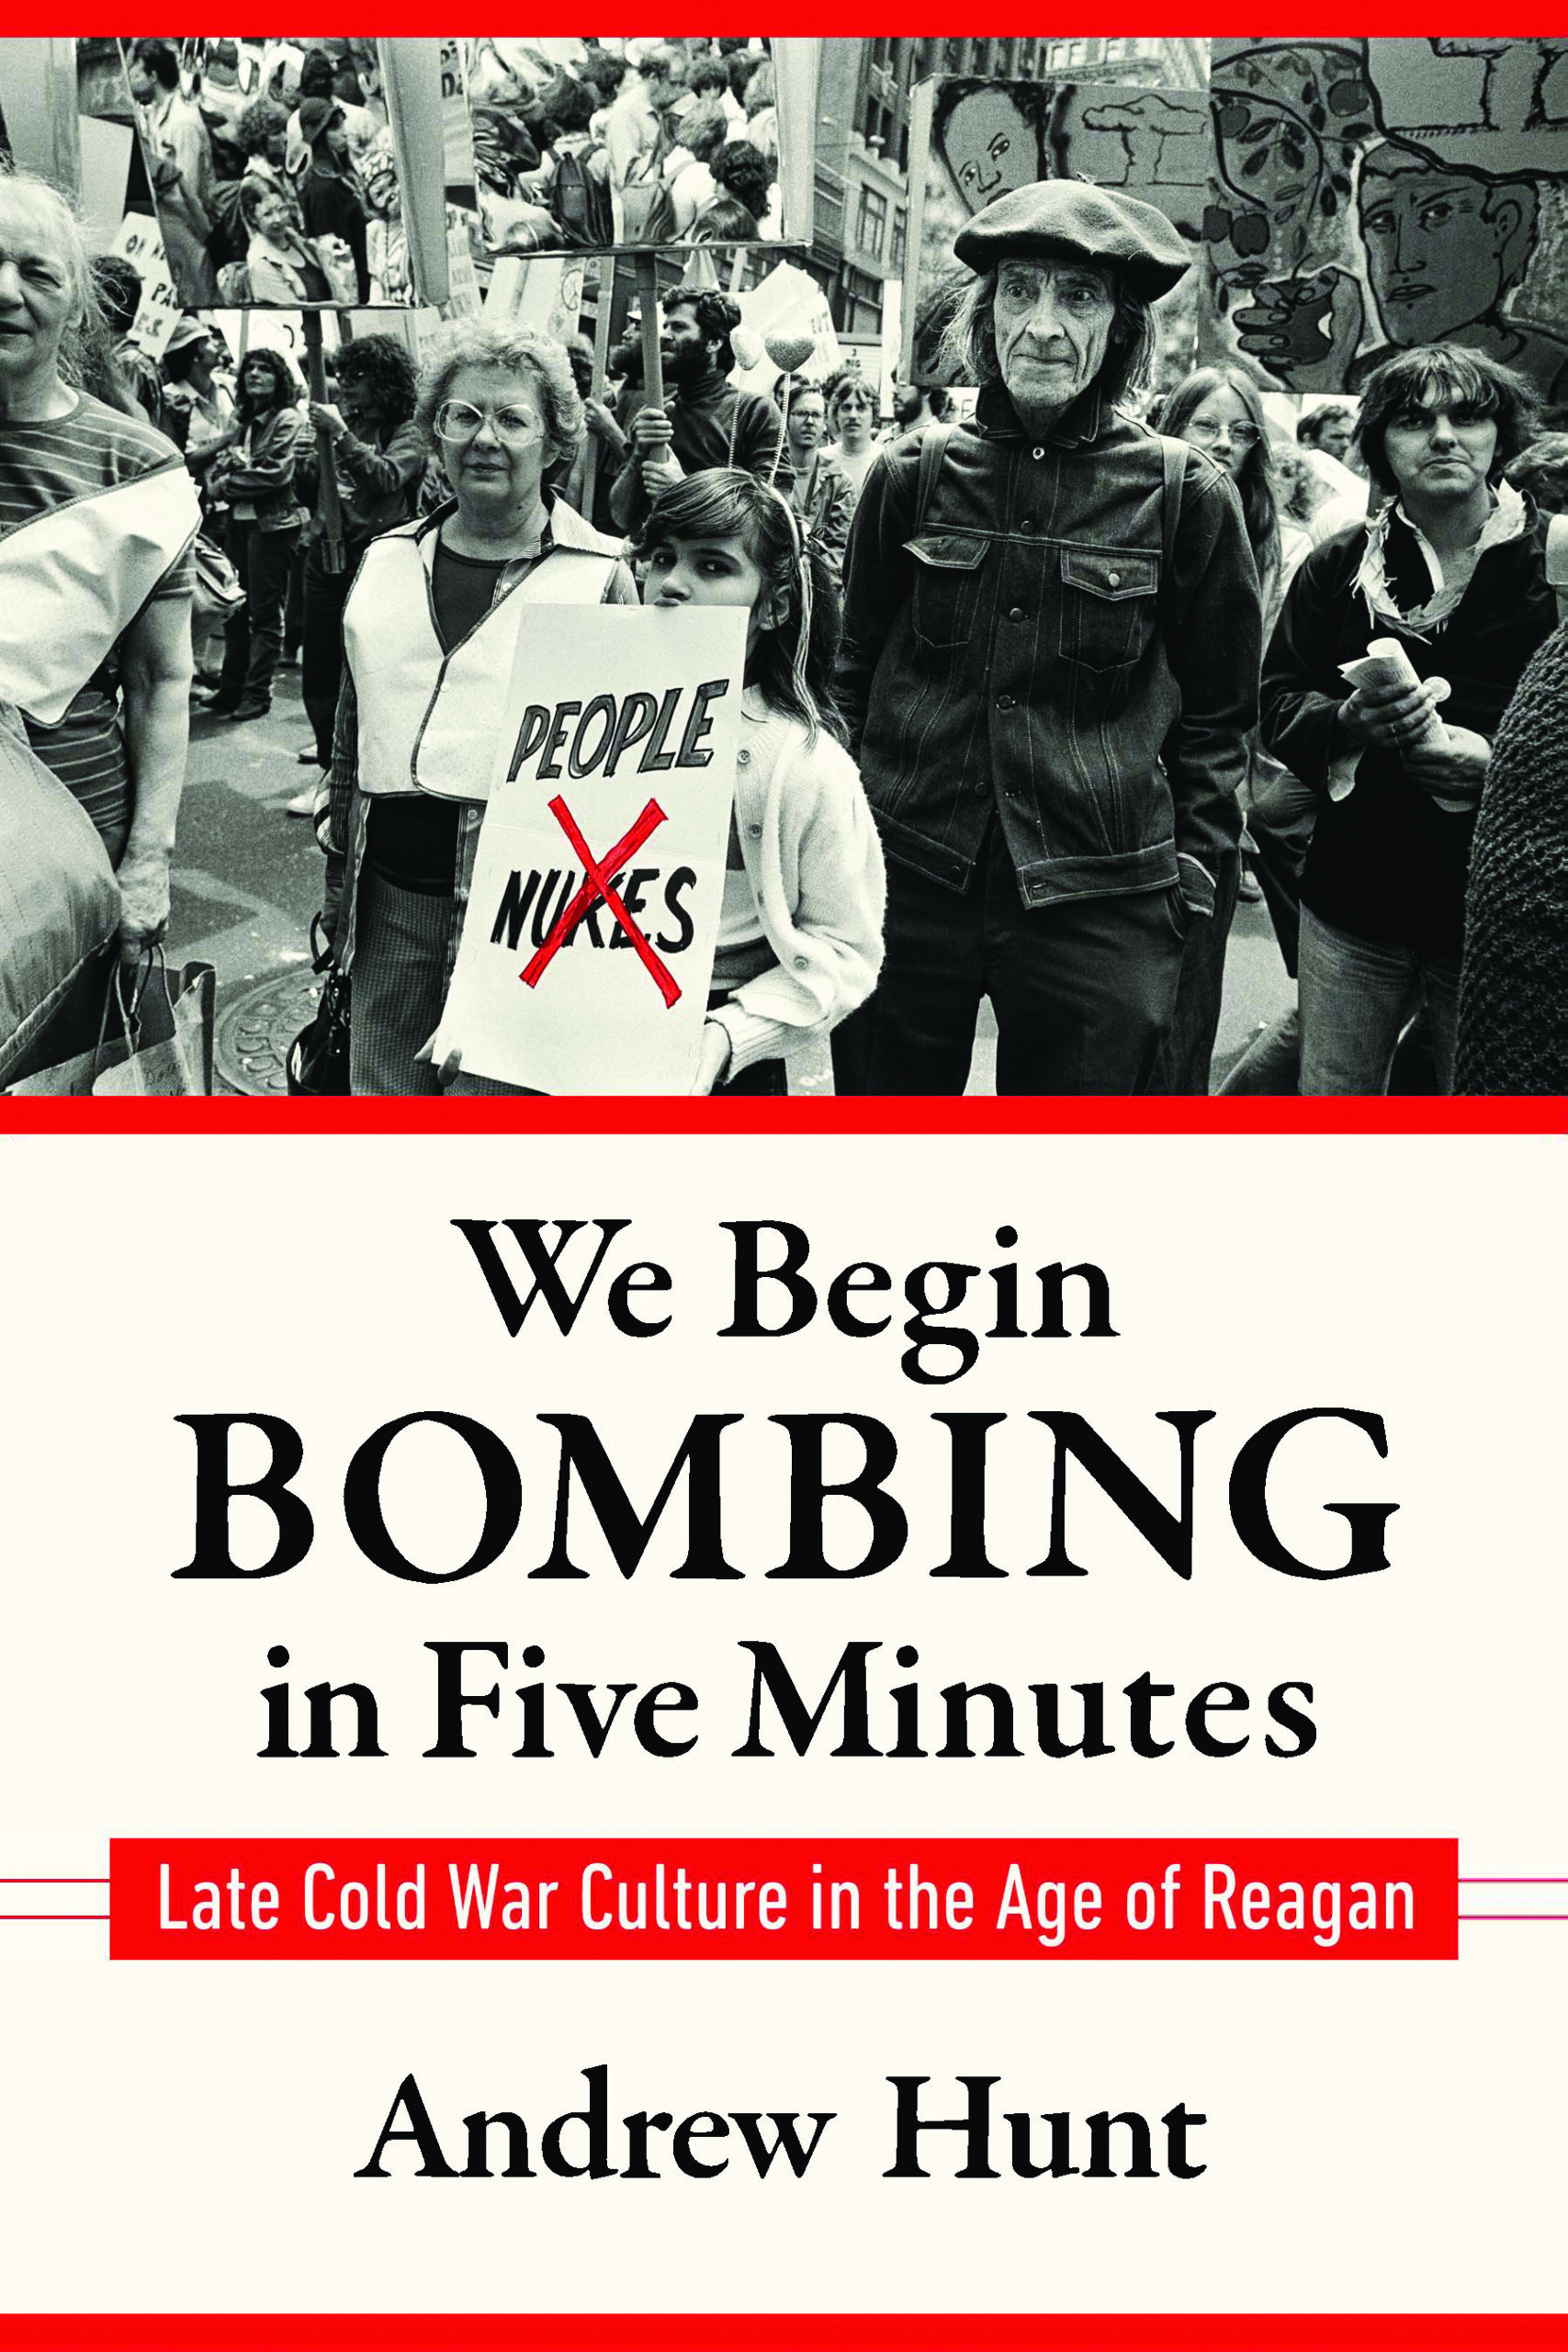 book cover, with images of protesters